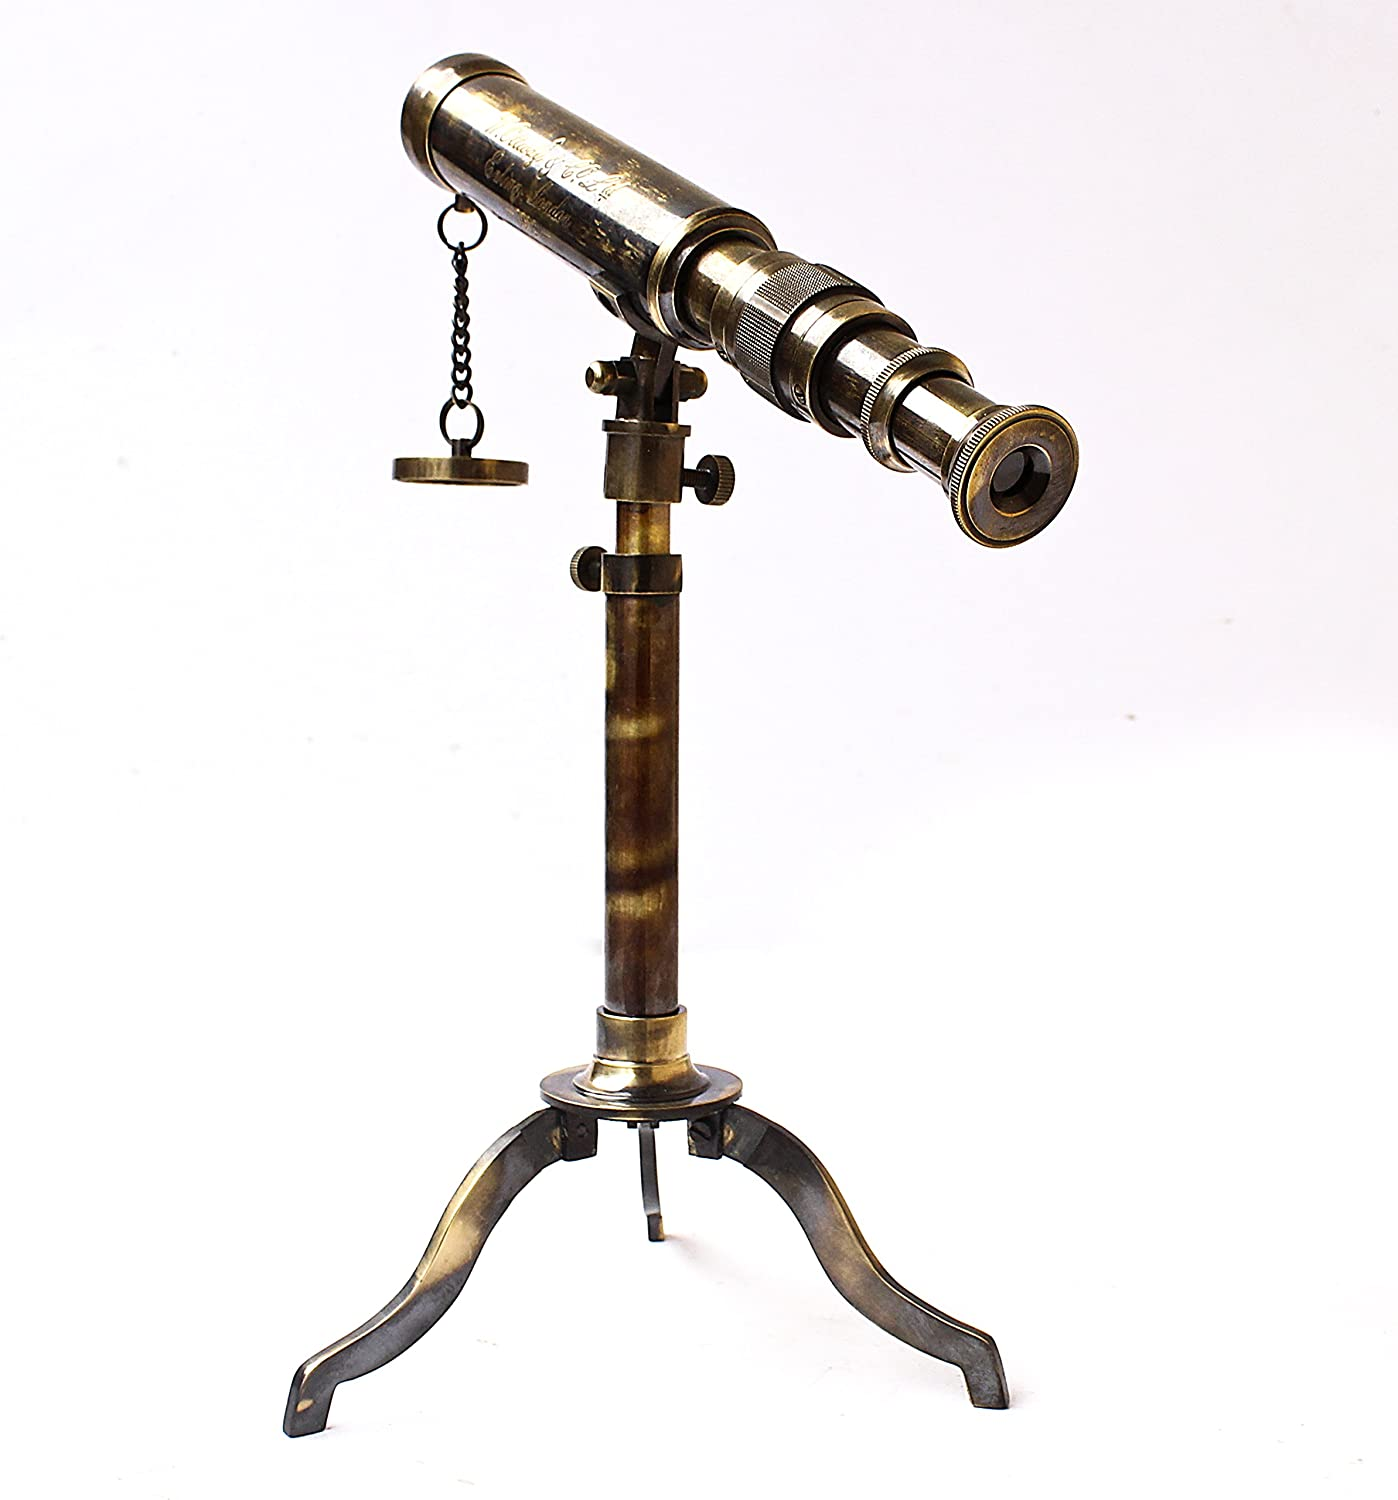 Ottway London 1915 Vintage Stand 10 by 18 inch Brass Antique A Collectibles Buy Nautical Telescope W